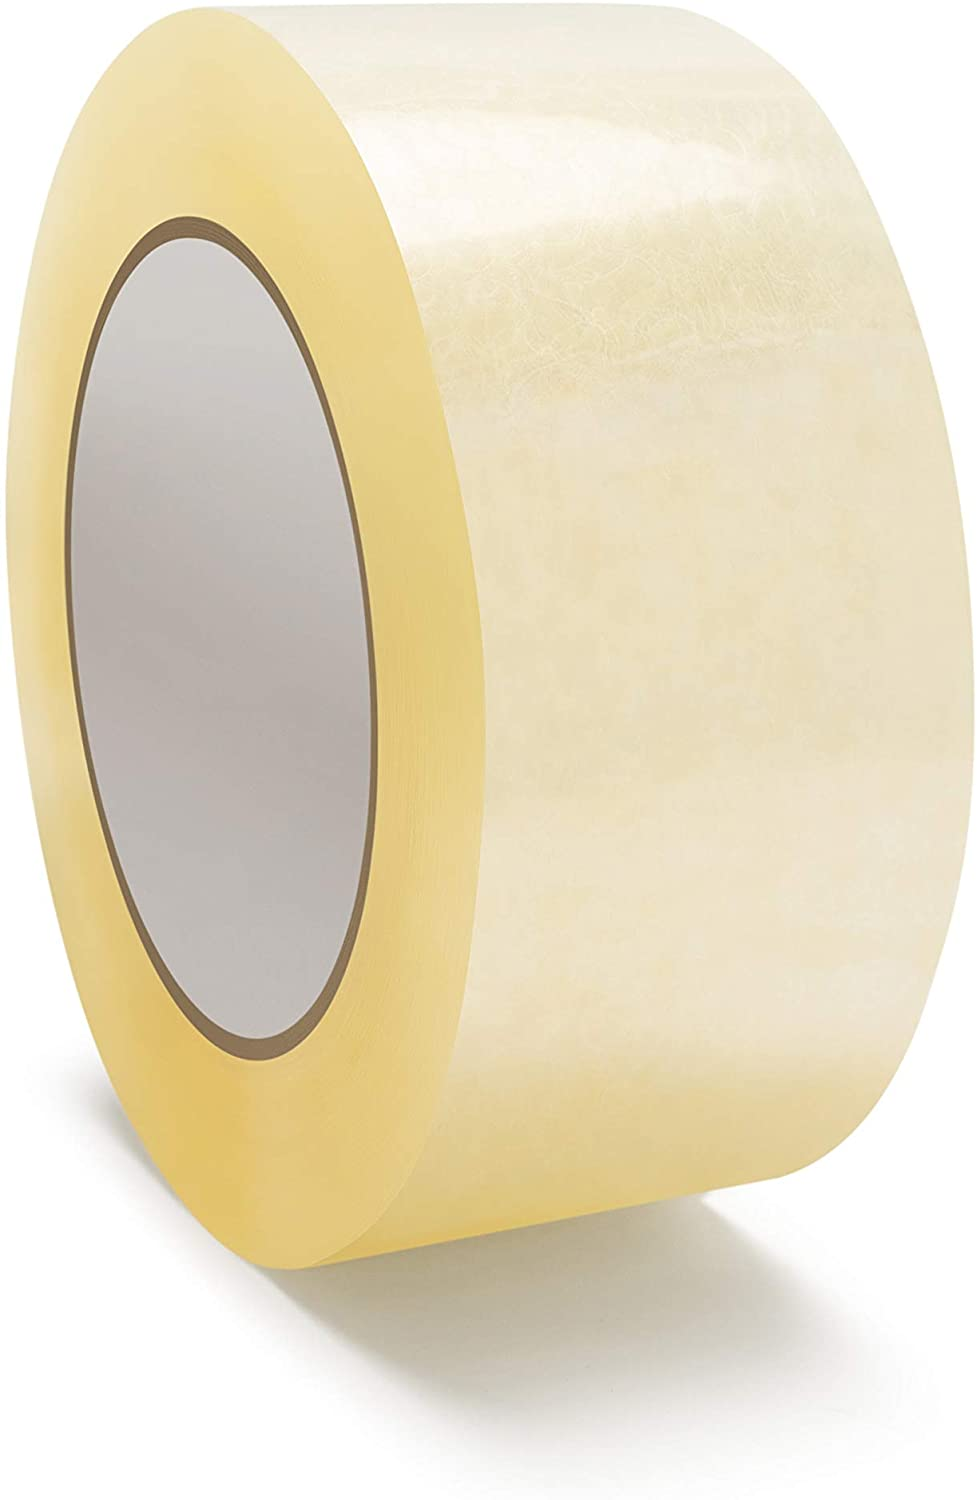 Carton Sealing Hotmelt Packaging Tape - Clear, 72 Rolls, 2 in. x 110 yd. 1.85 Mil